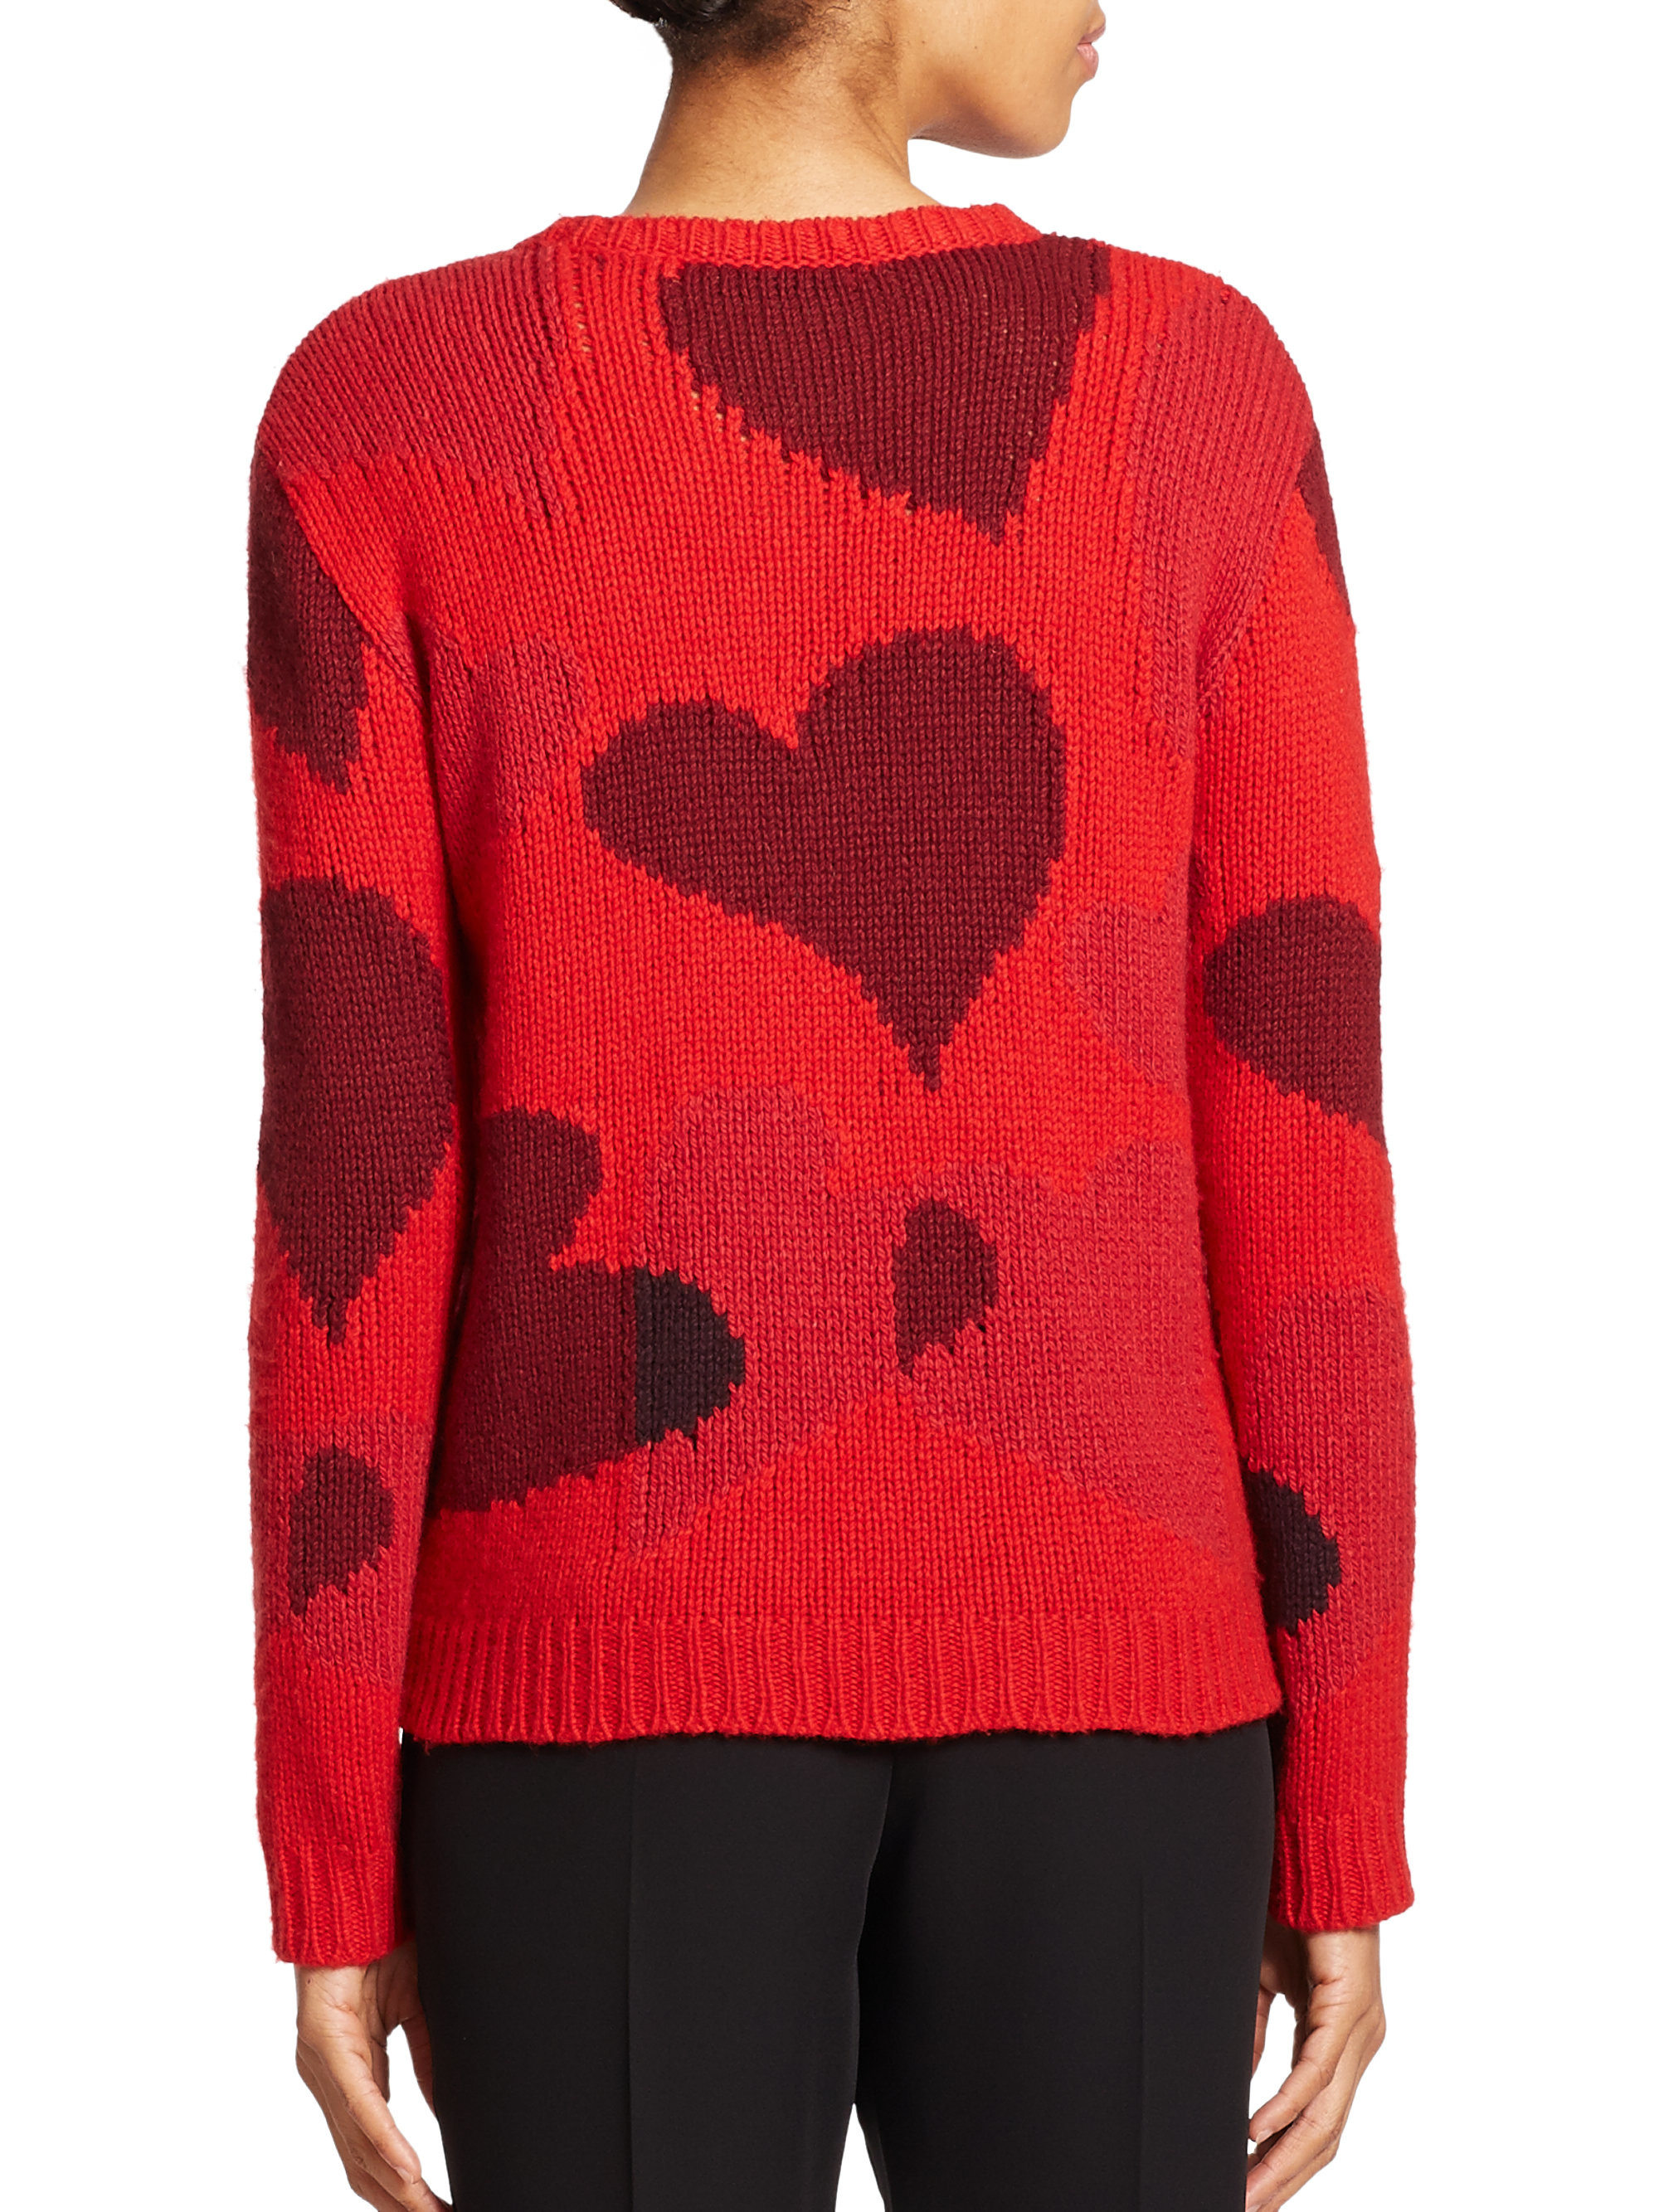 Elegant Valentino Heart Intarsia Cashmere Sweater In Red Red Heart Sweater Of Lovely 32 Ideas Red Heart Sweater